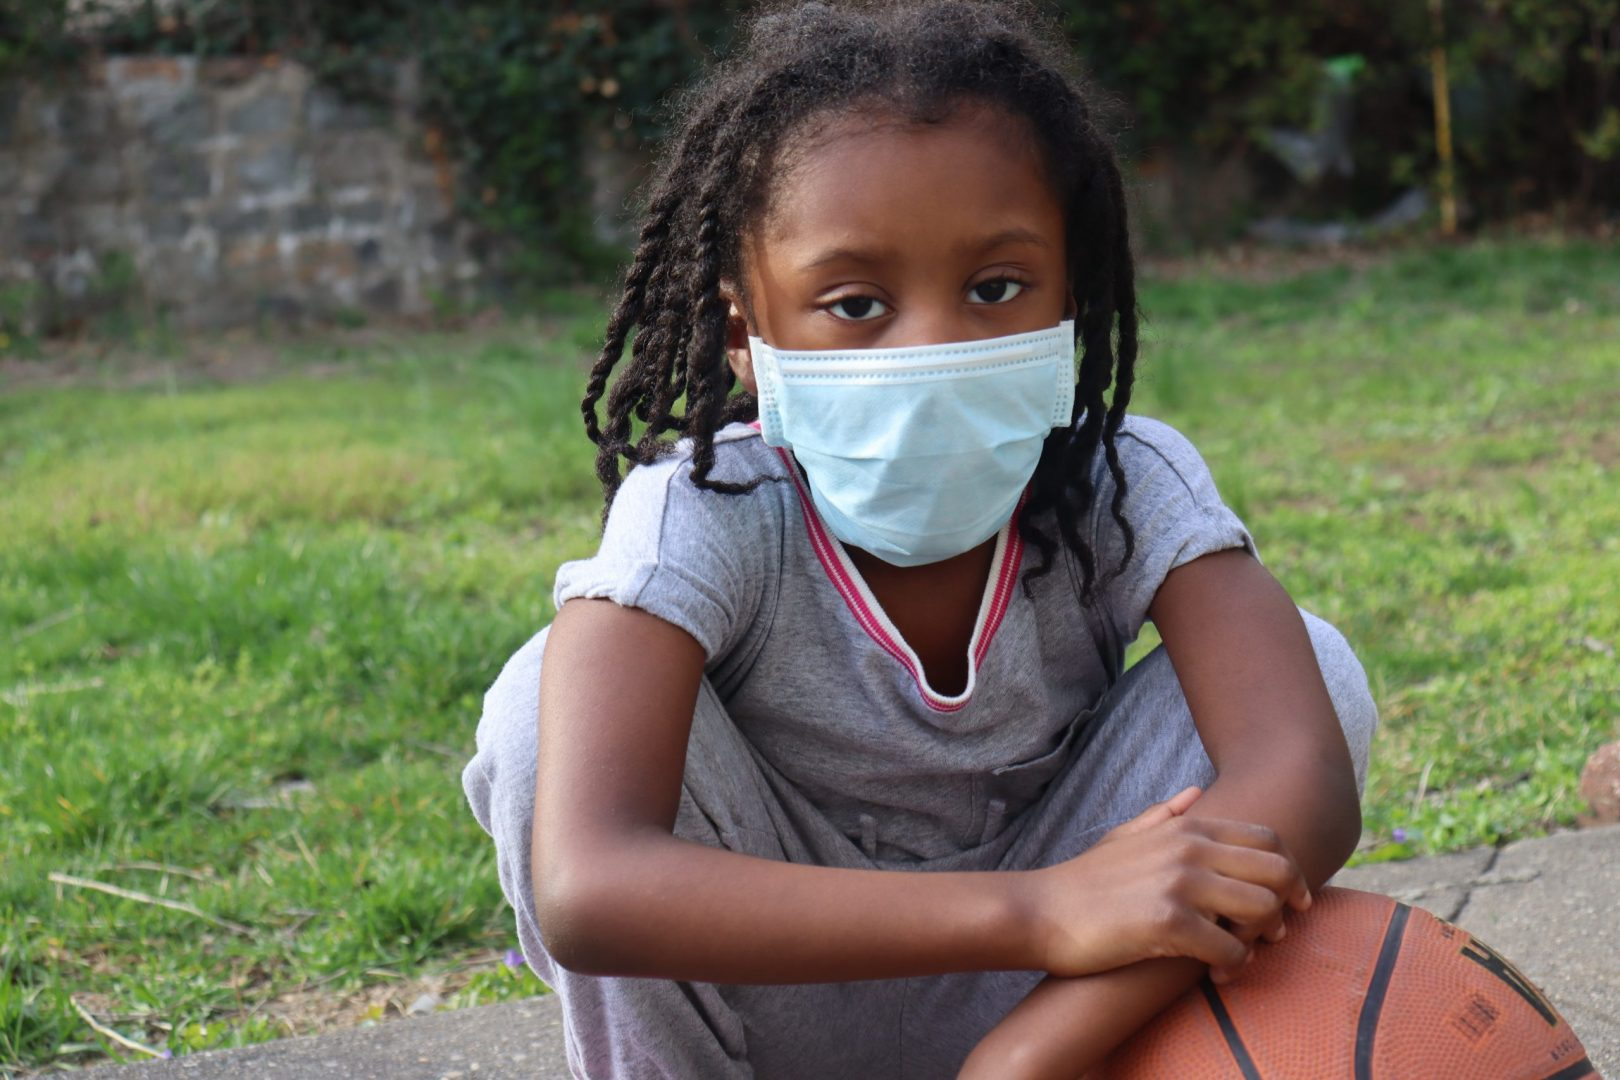 African American girl with mask during pandemic with a basketball